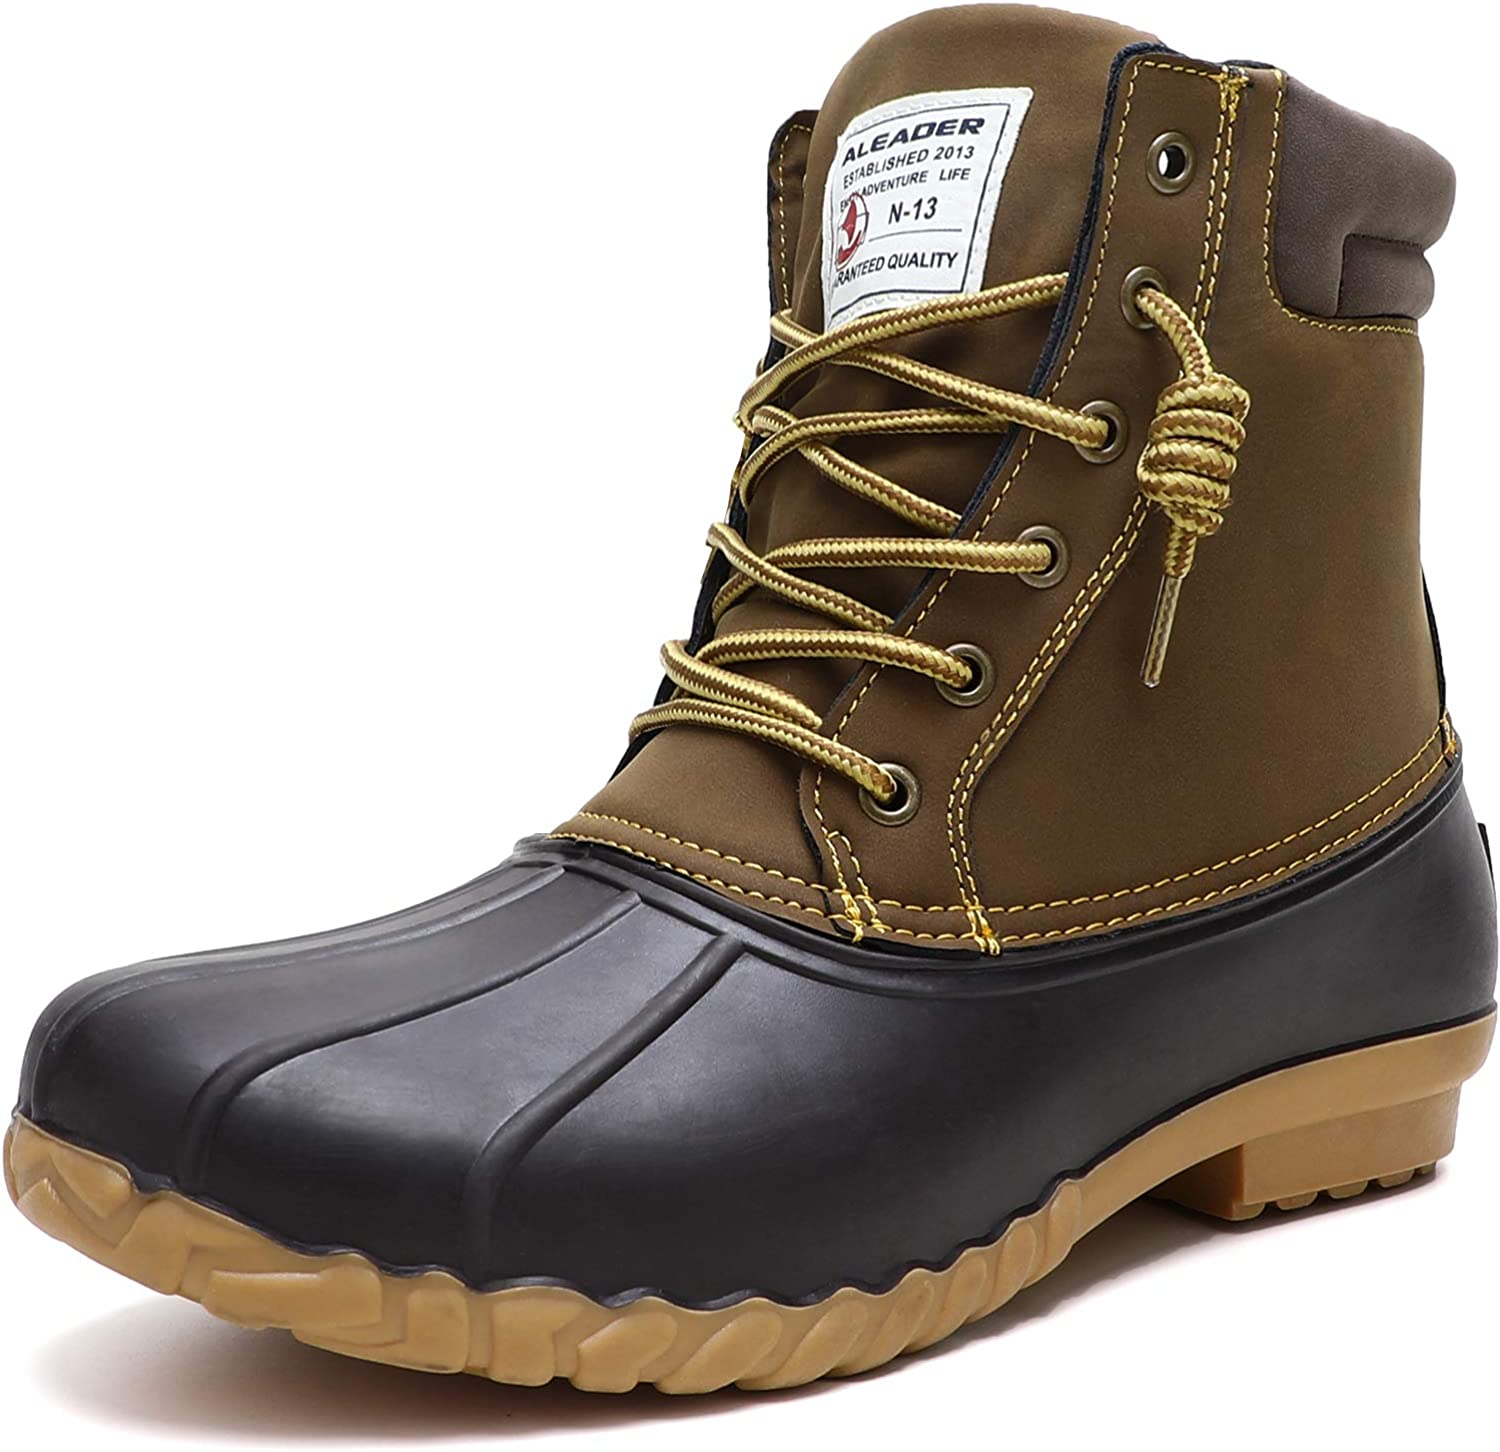 ALEADER Mens Duck Boot Now free shipping Waterproof Insulated Fort Worth Mall Fur Lined Shell